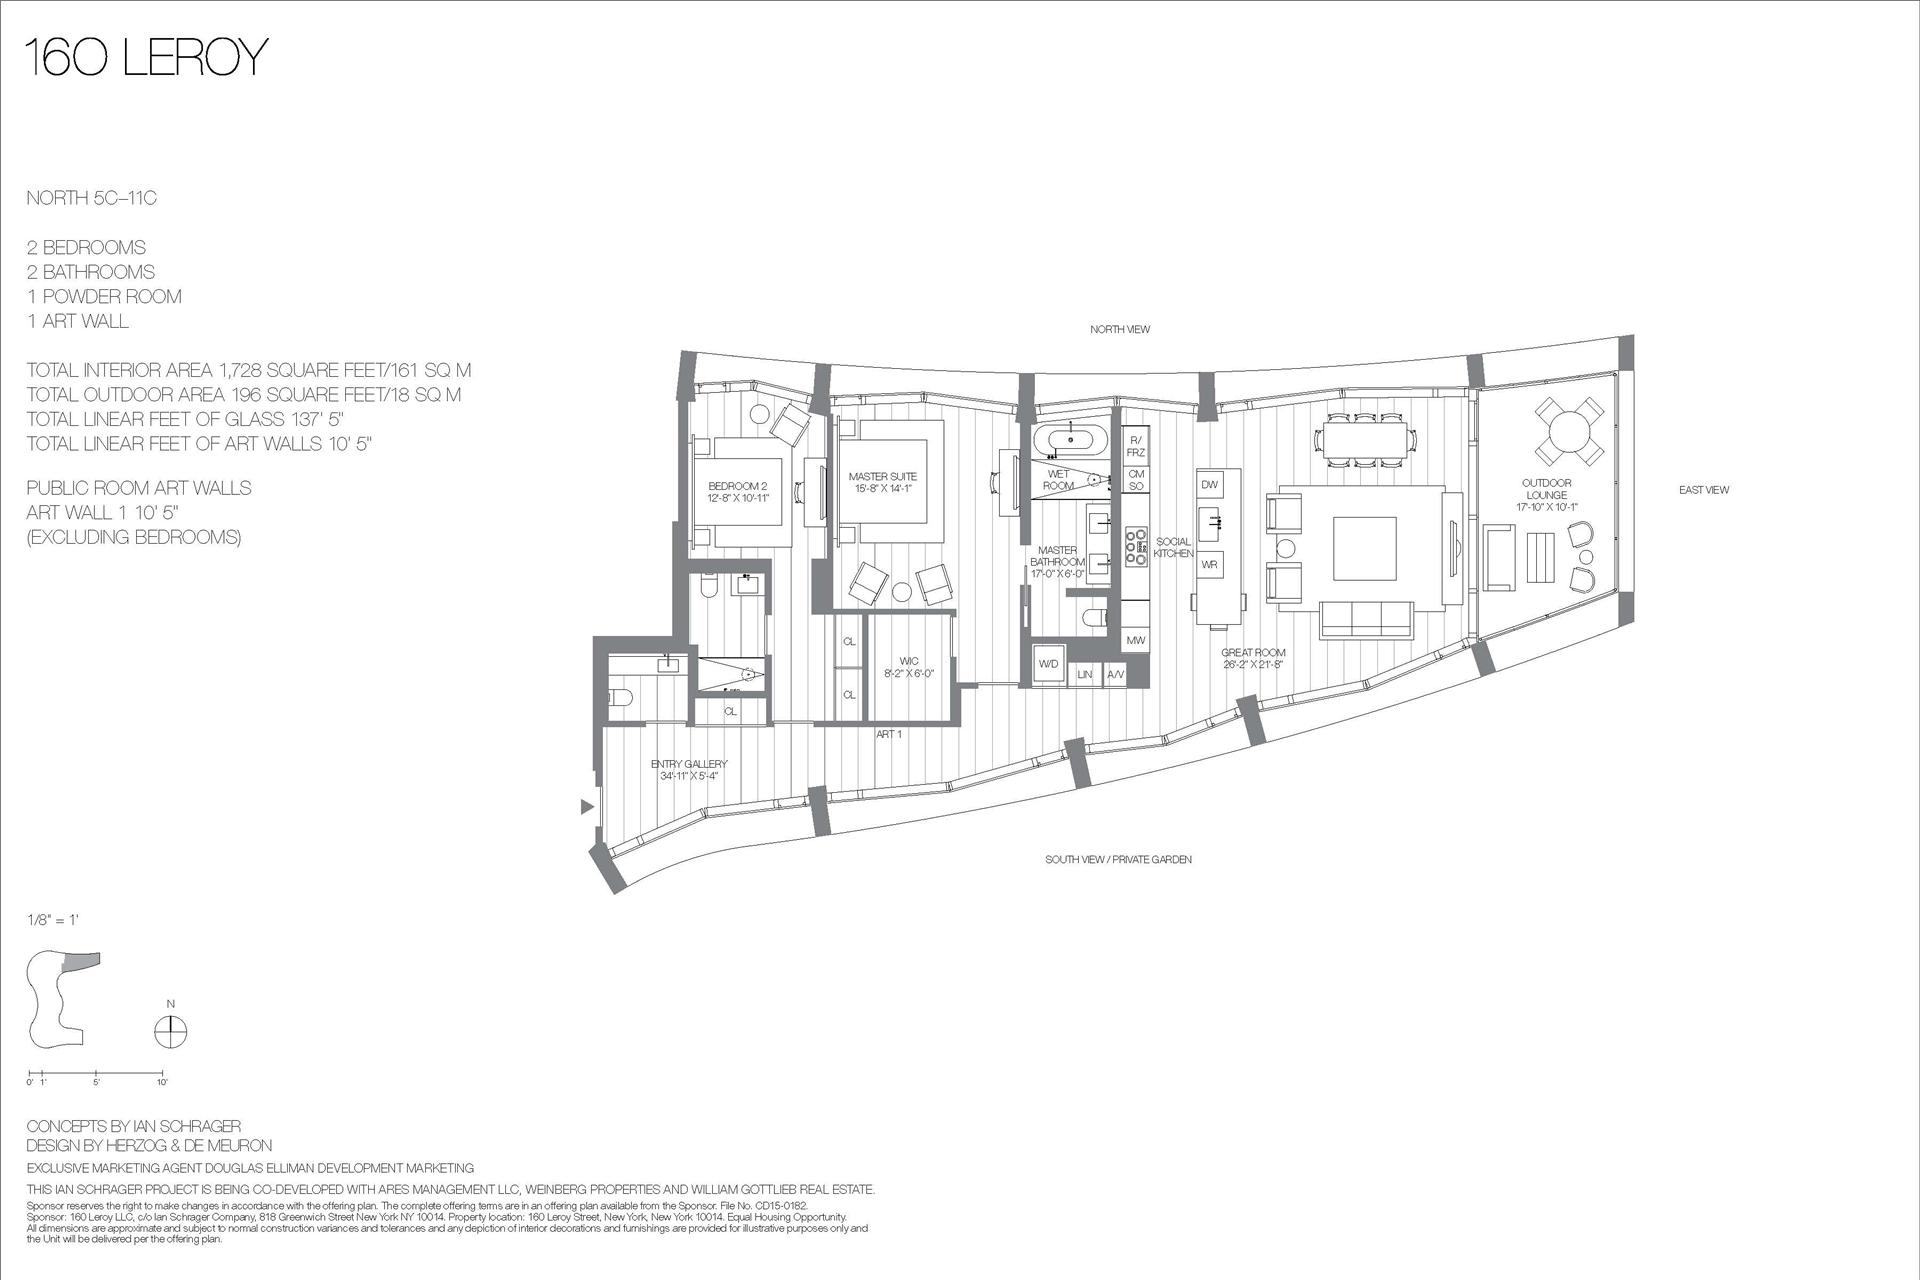 Floor plan of 160 Leroy St, NORTH10C - West Village - Meatpacking District, New York